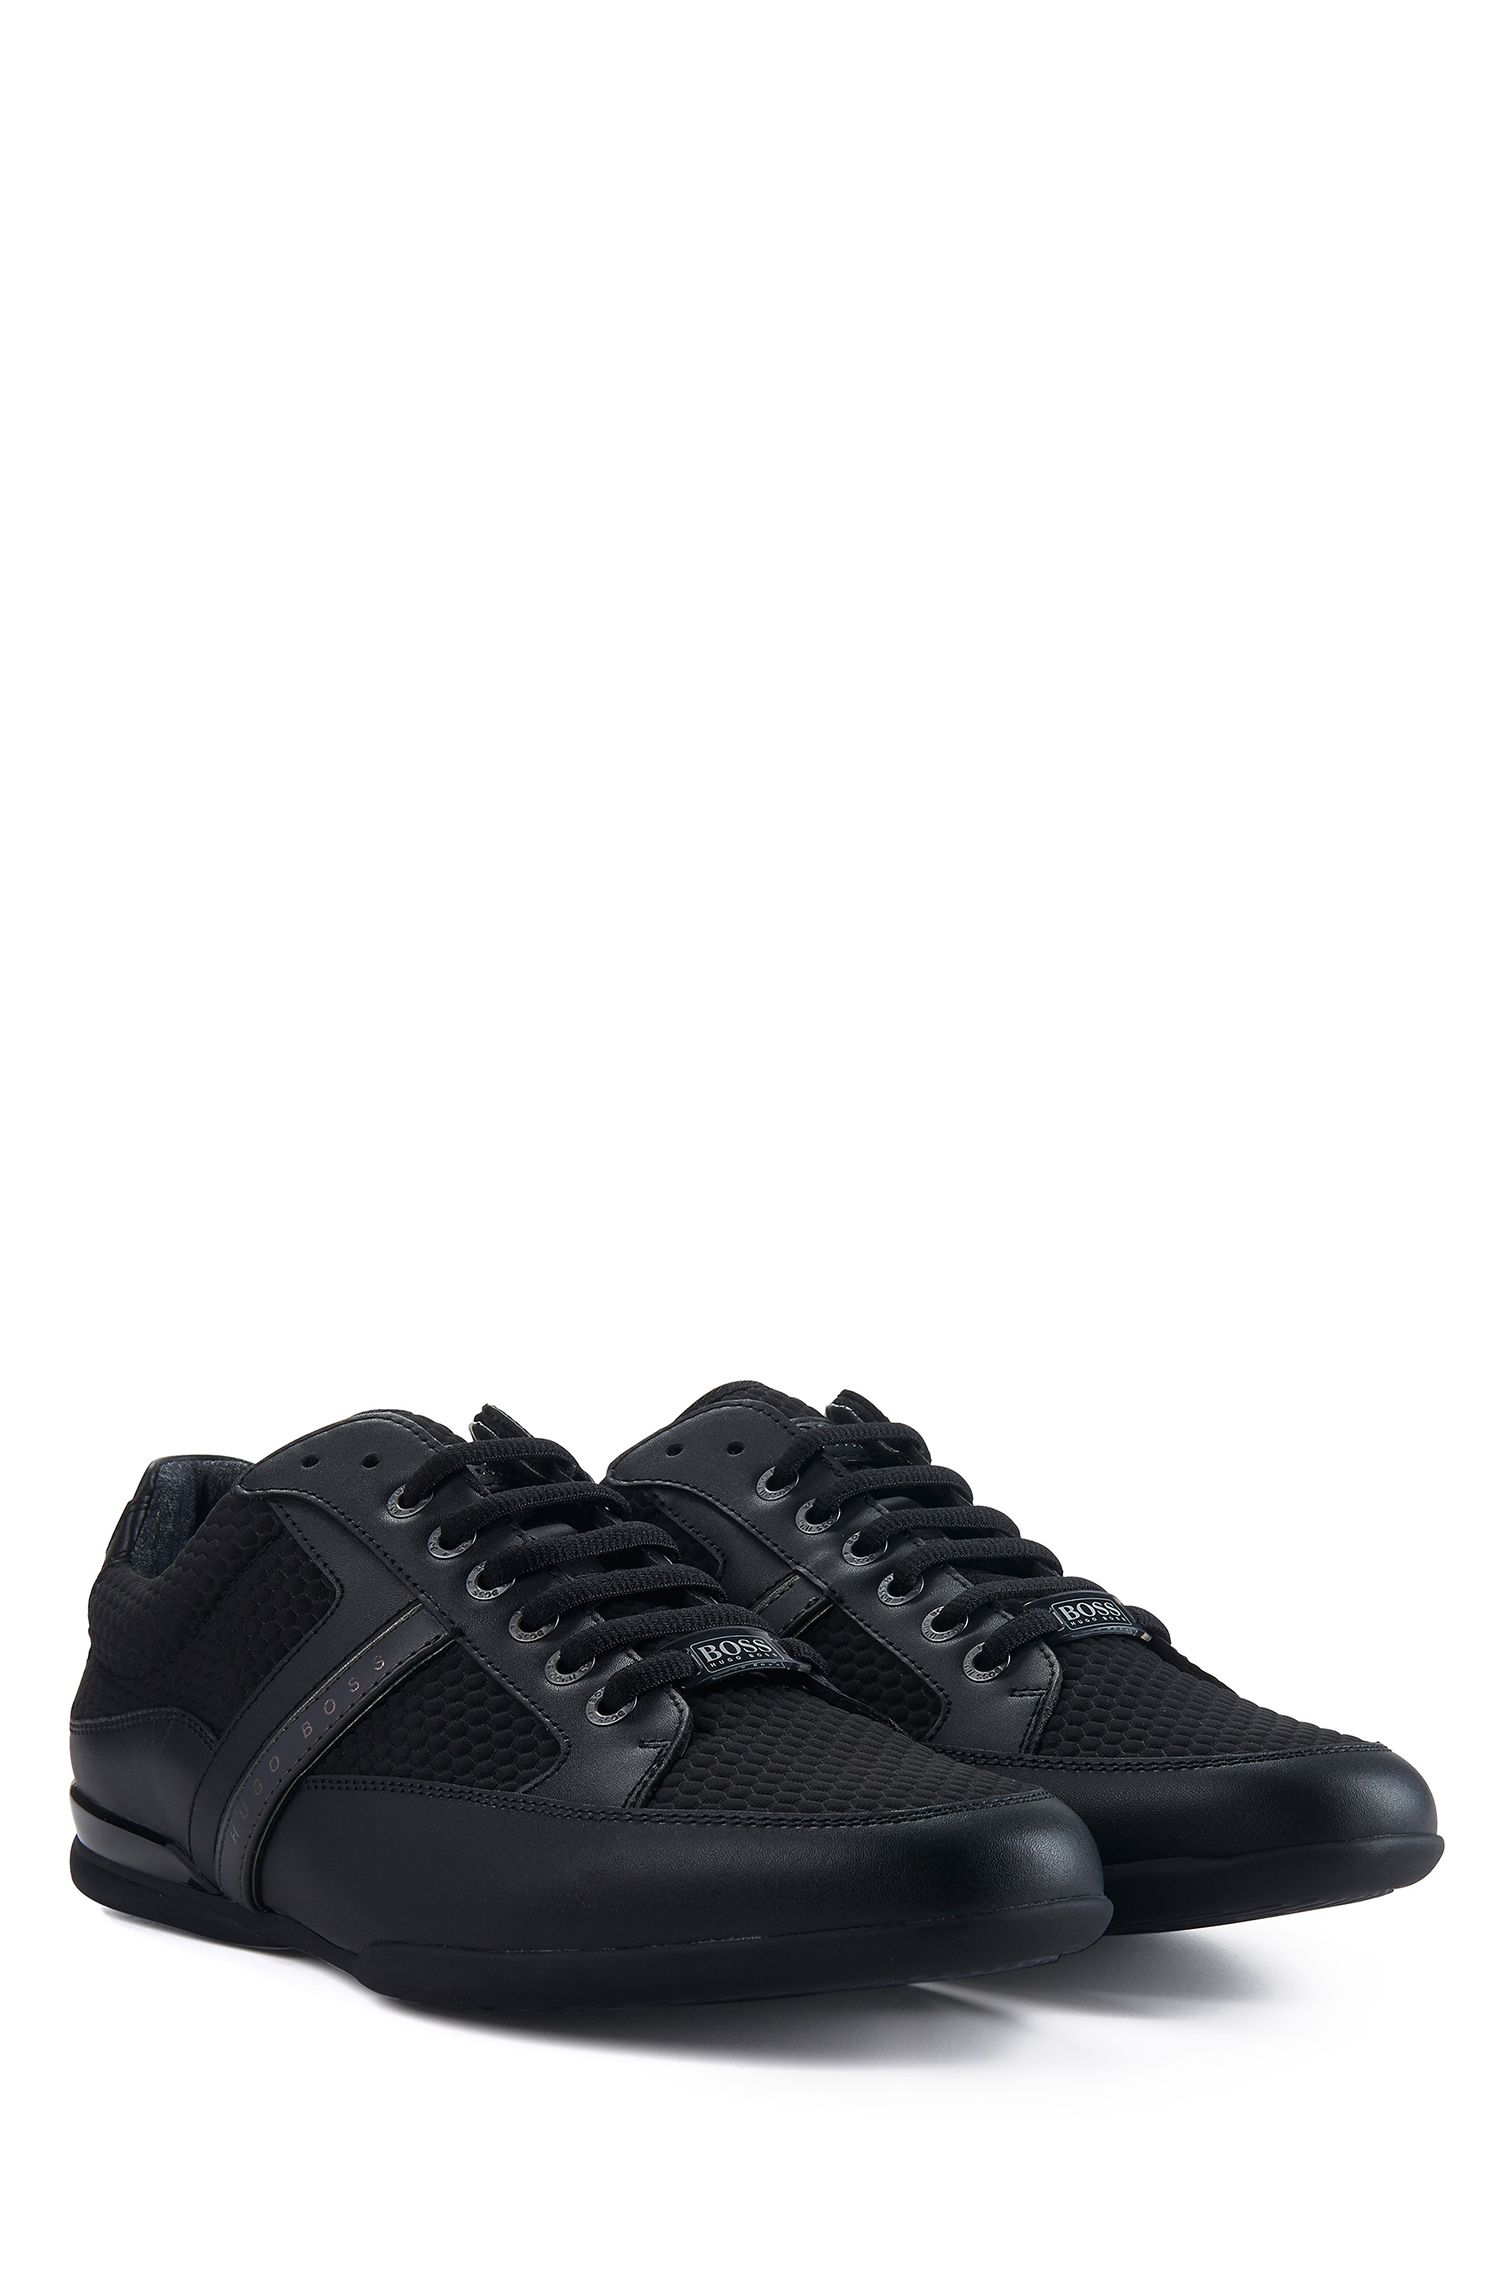 Mesh Leather Sneaker | Space Lowp Nyme, Black